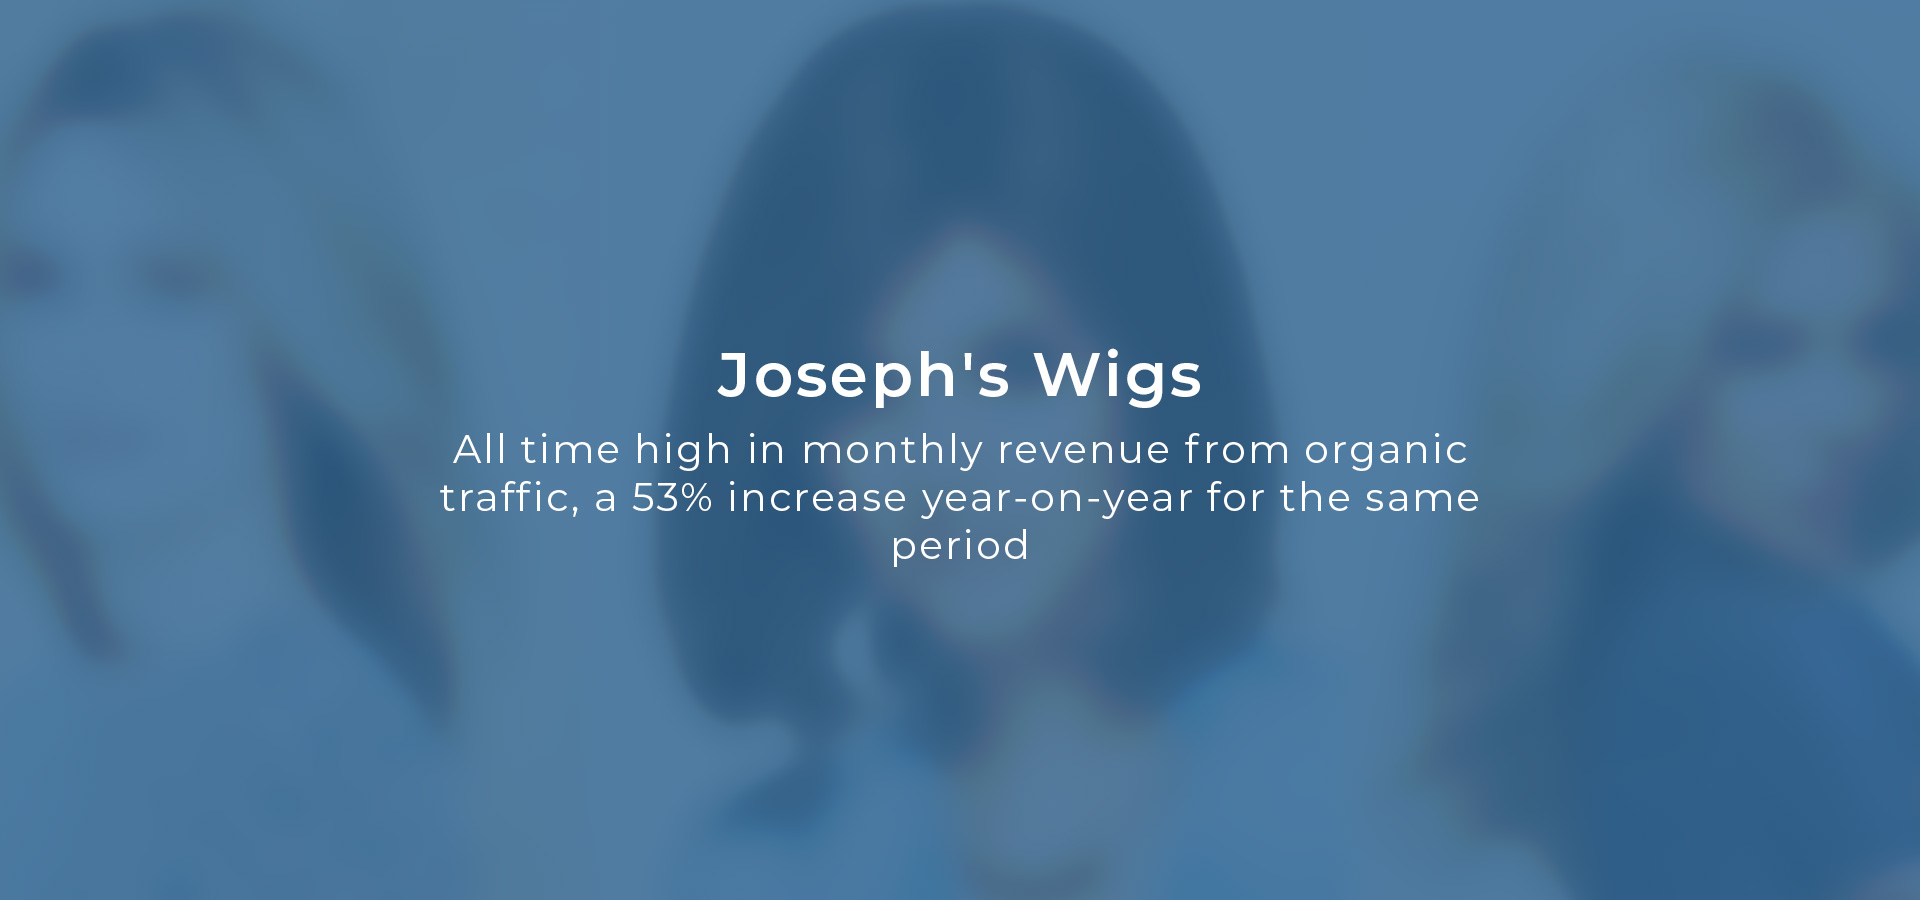 Innovation Visual Client Josephs Wigs - all time high in monthly revenue from organic traffic